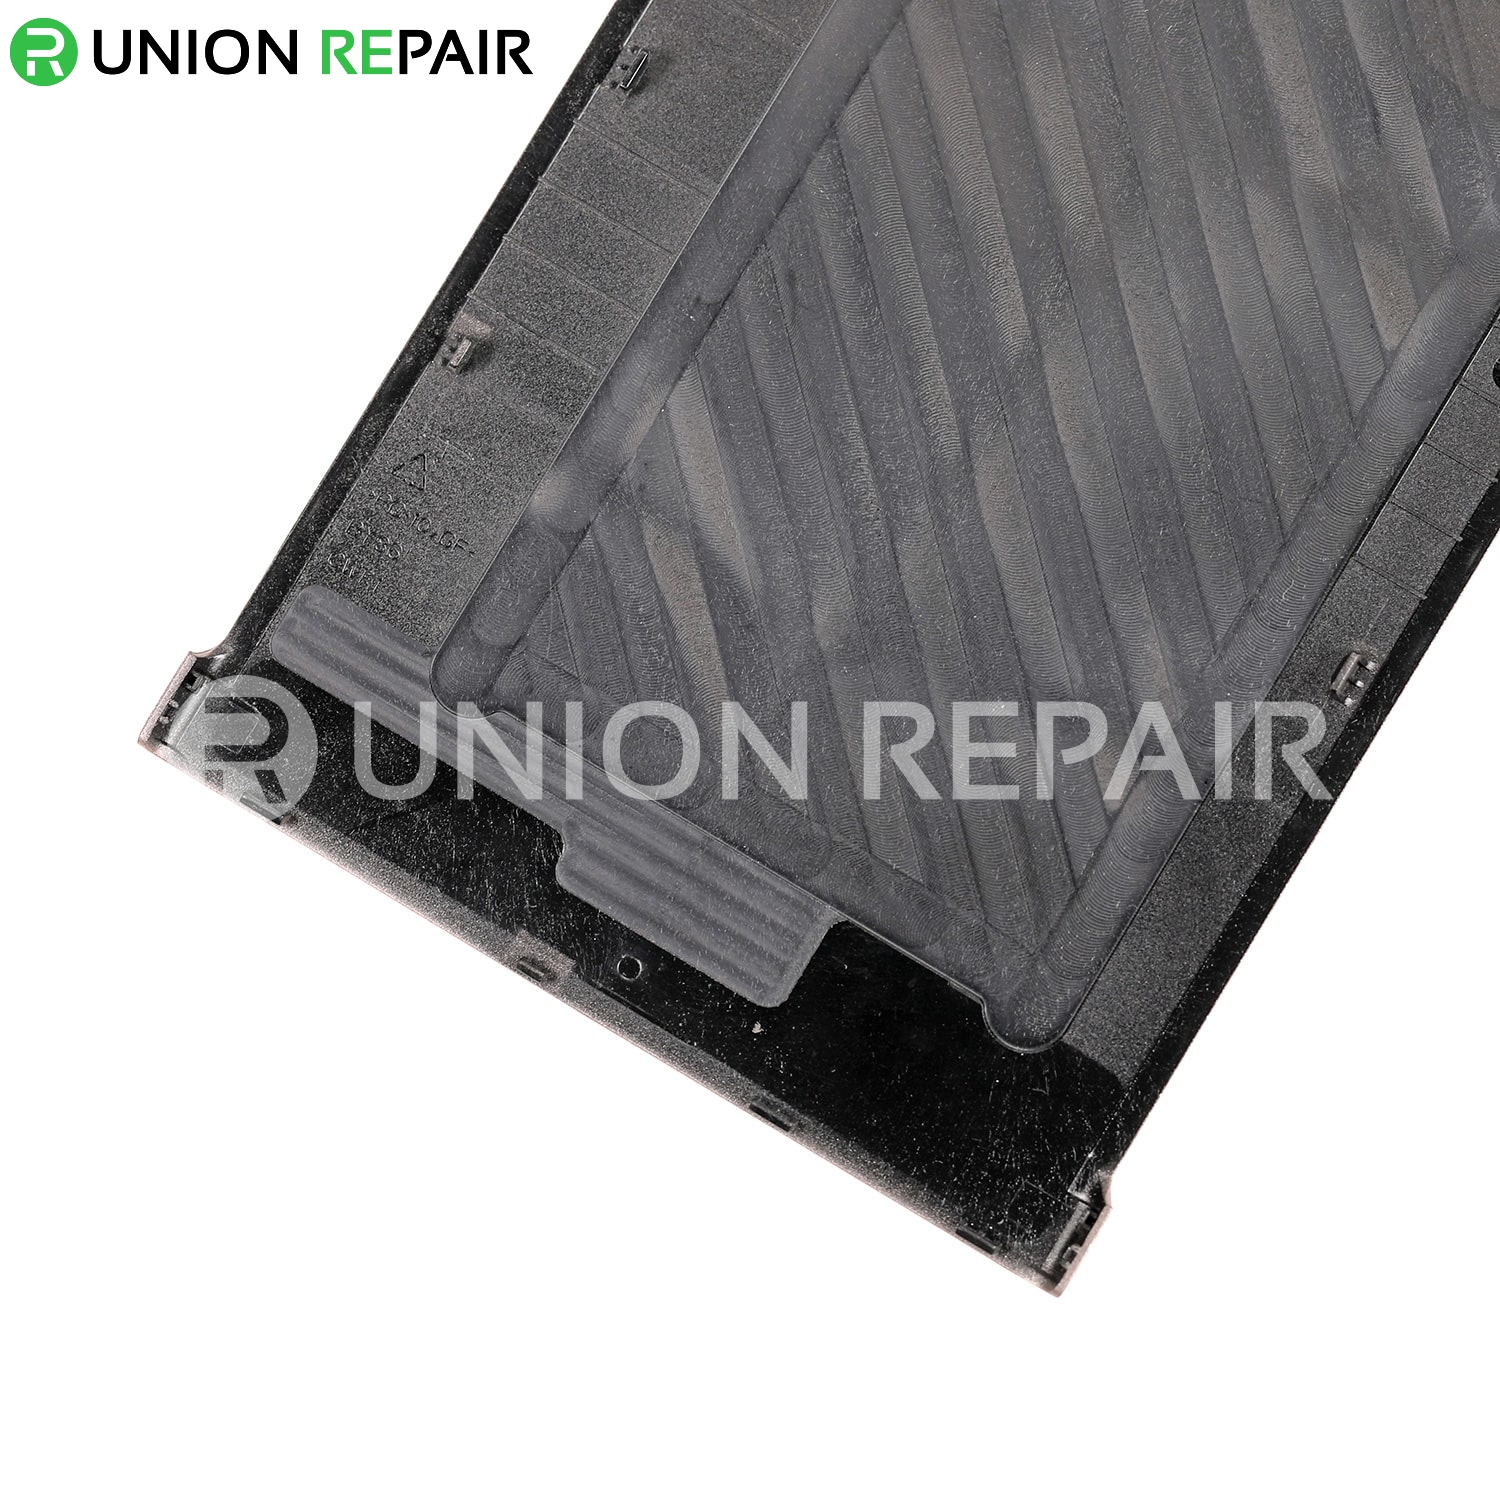 Replacement for Sony Xperia XA1 Ultra Battery Door - Pink